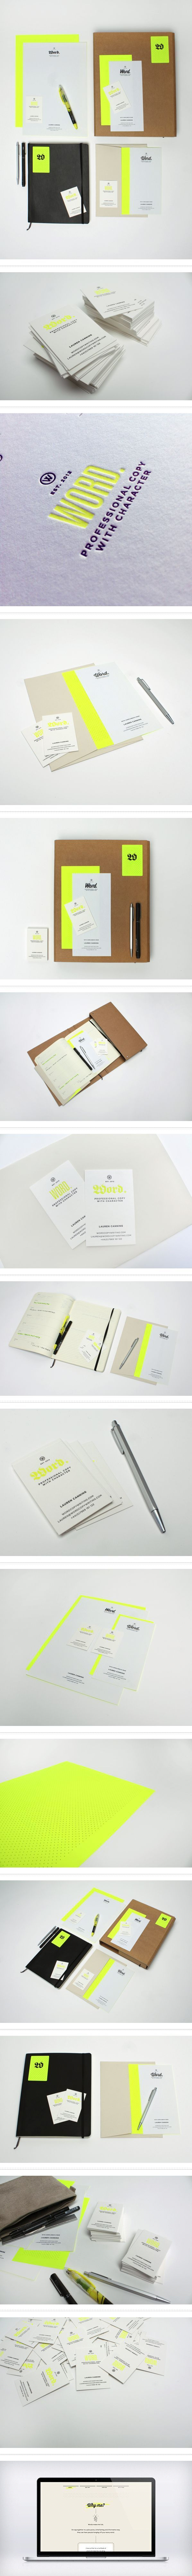 Business: Word. by Passport, via Behance